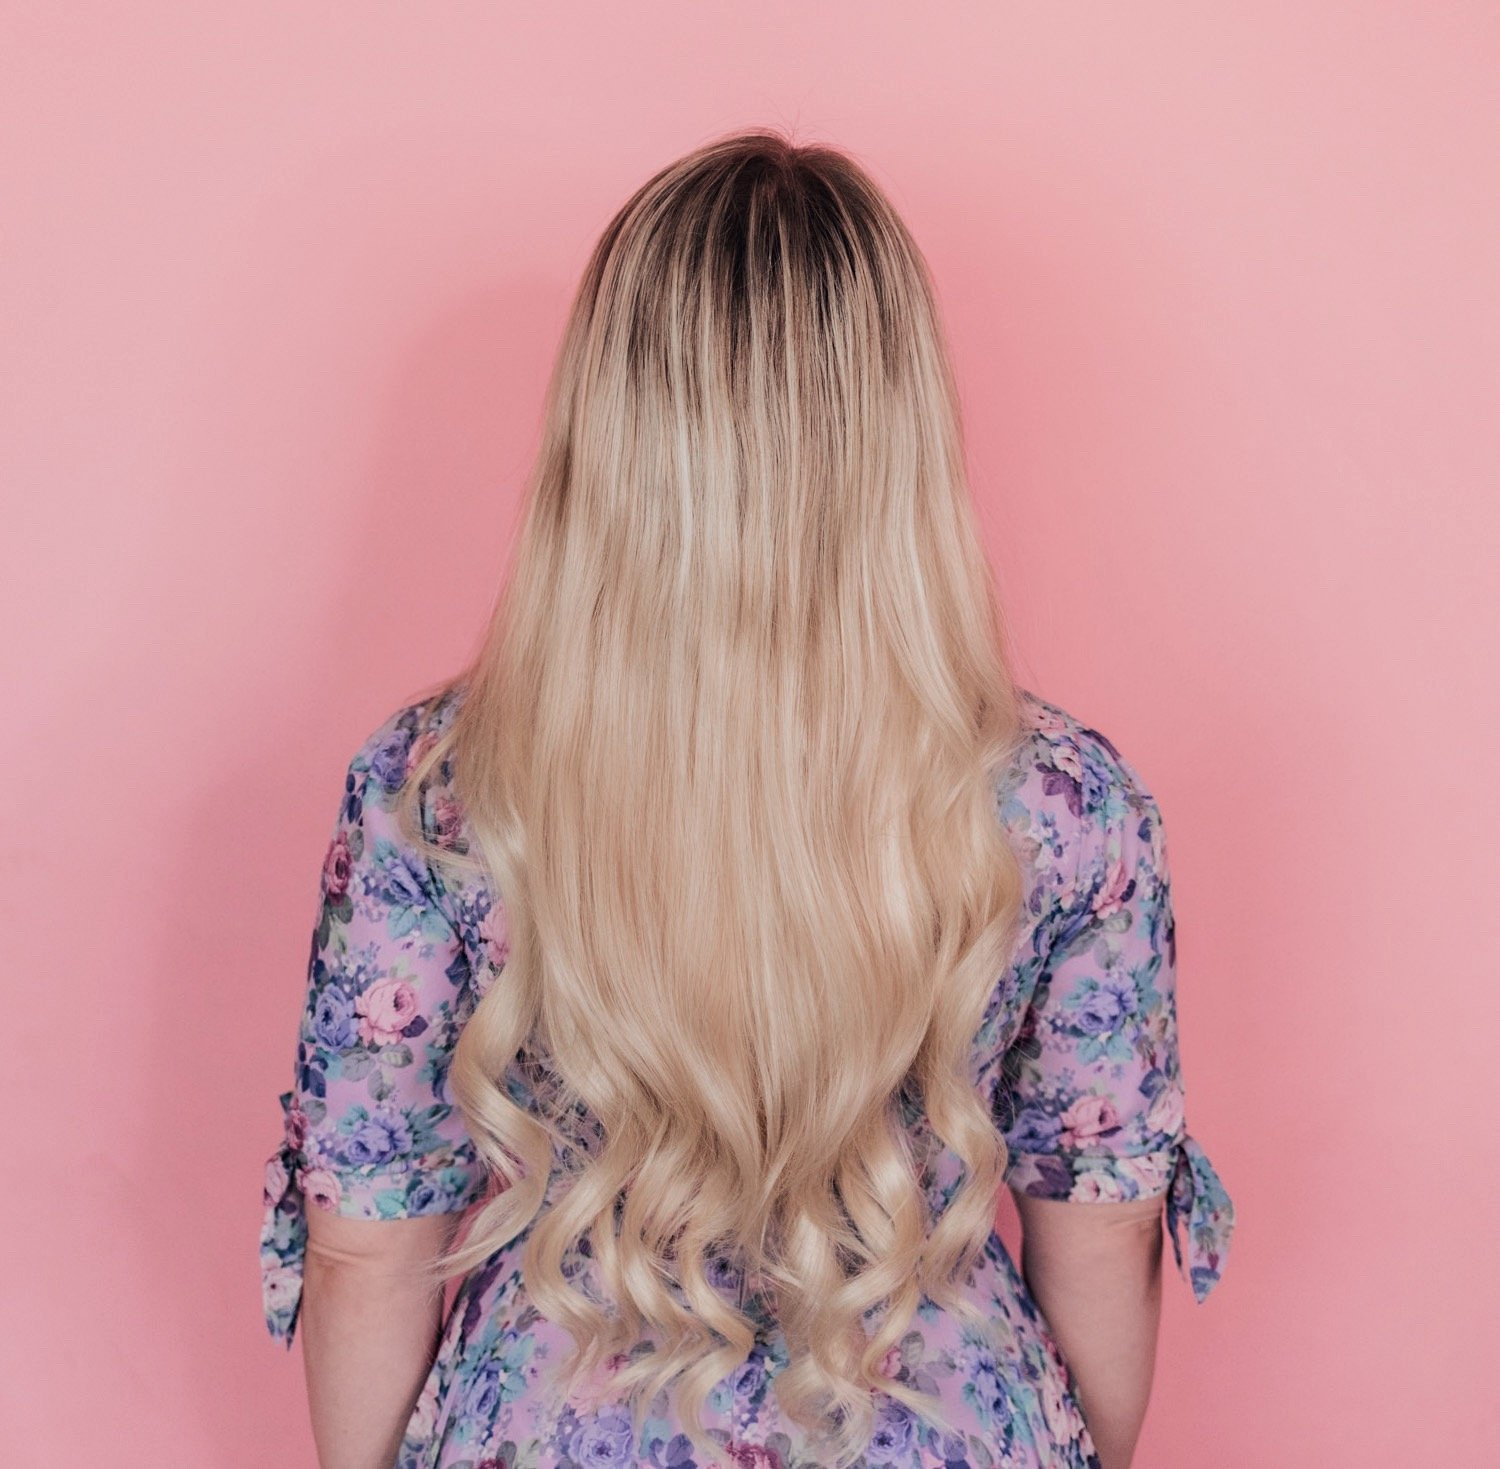 Fashion Blogger Elizabeth Hugen of Lizzie in Lace shares her Hidden Crown Extensions Review Update and a comparison of all the extensions including the Hidden Crown Clip Ins